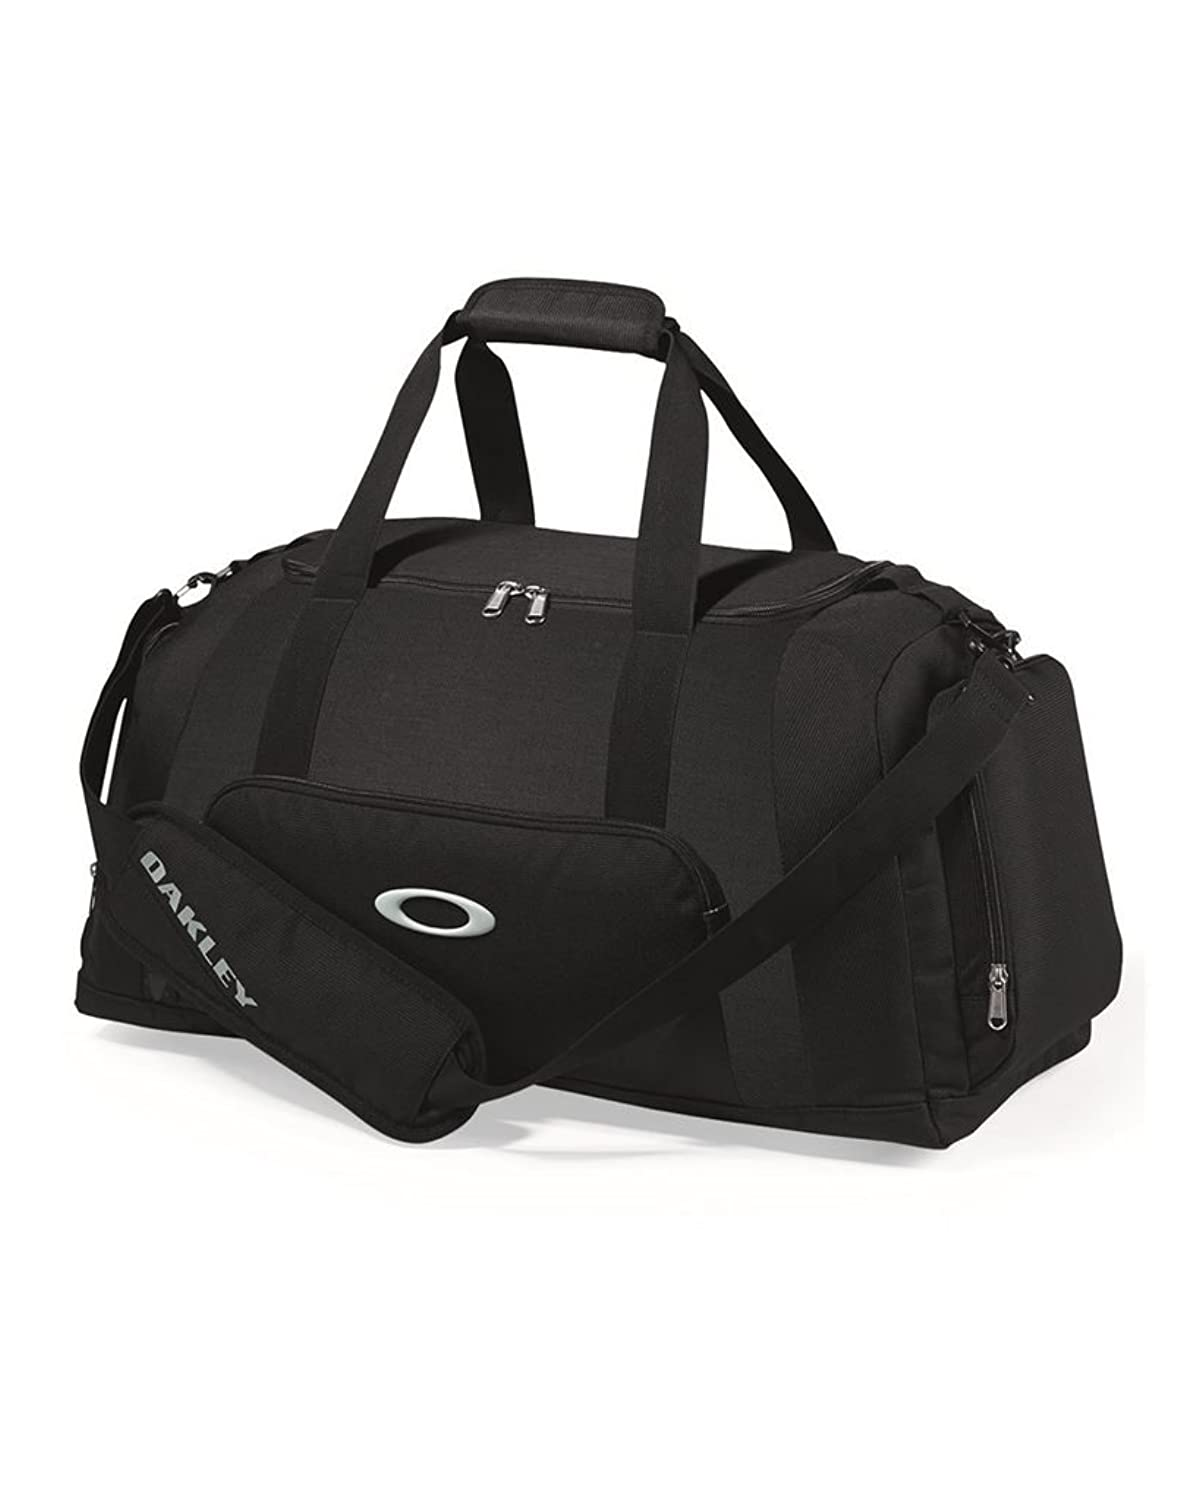 a32f6ad427 Oakley Hot Tub Duffel « One More Soul